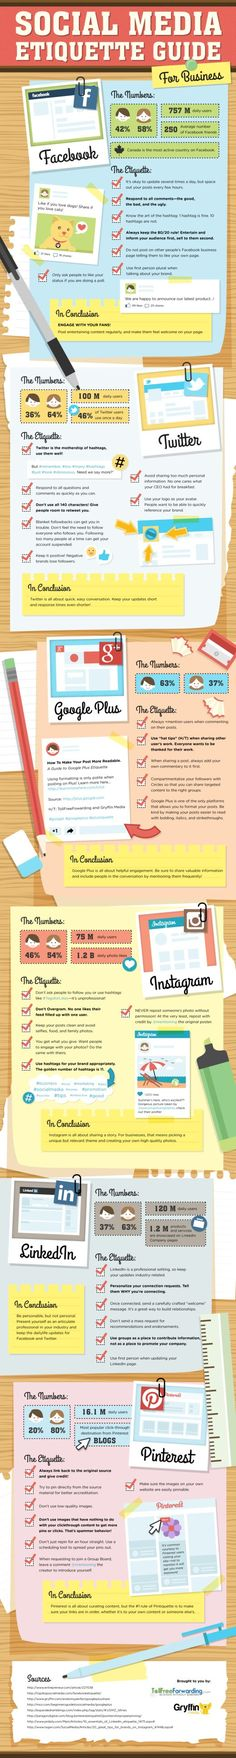 These 15 Social Media Ps & Qs May Surprise You [Infographic] | via #BornToBeSocial - Pinterest Marketing